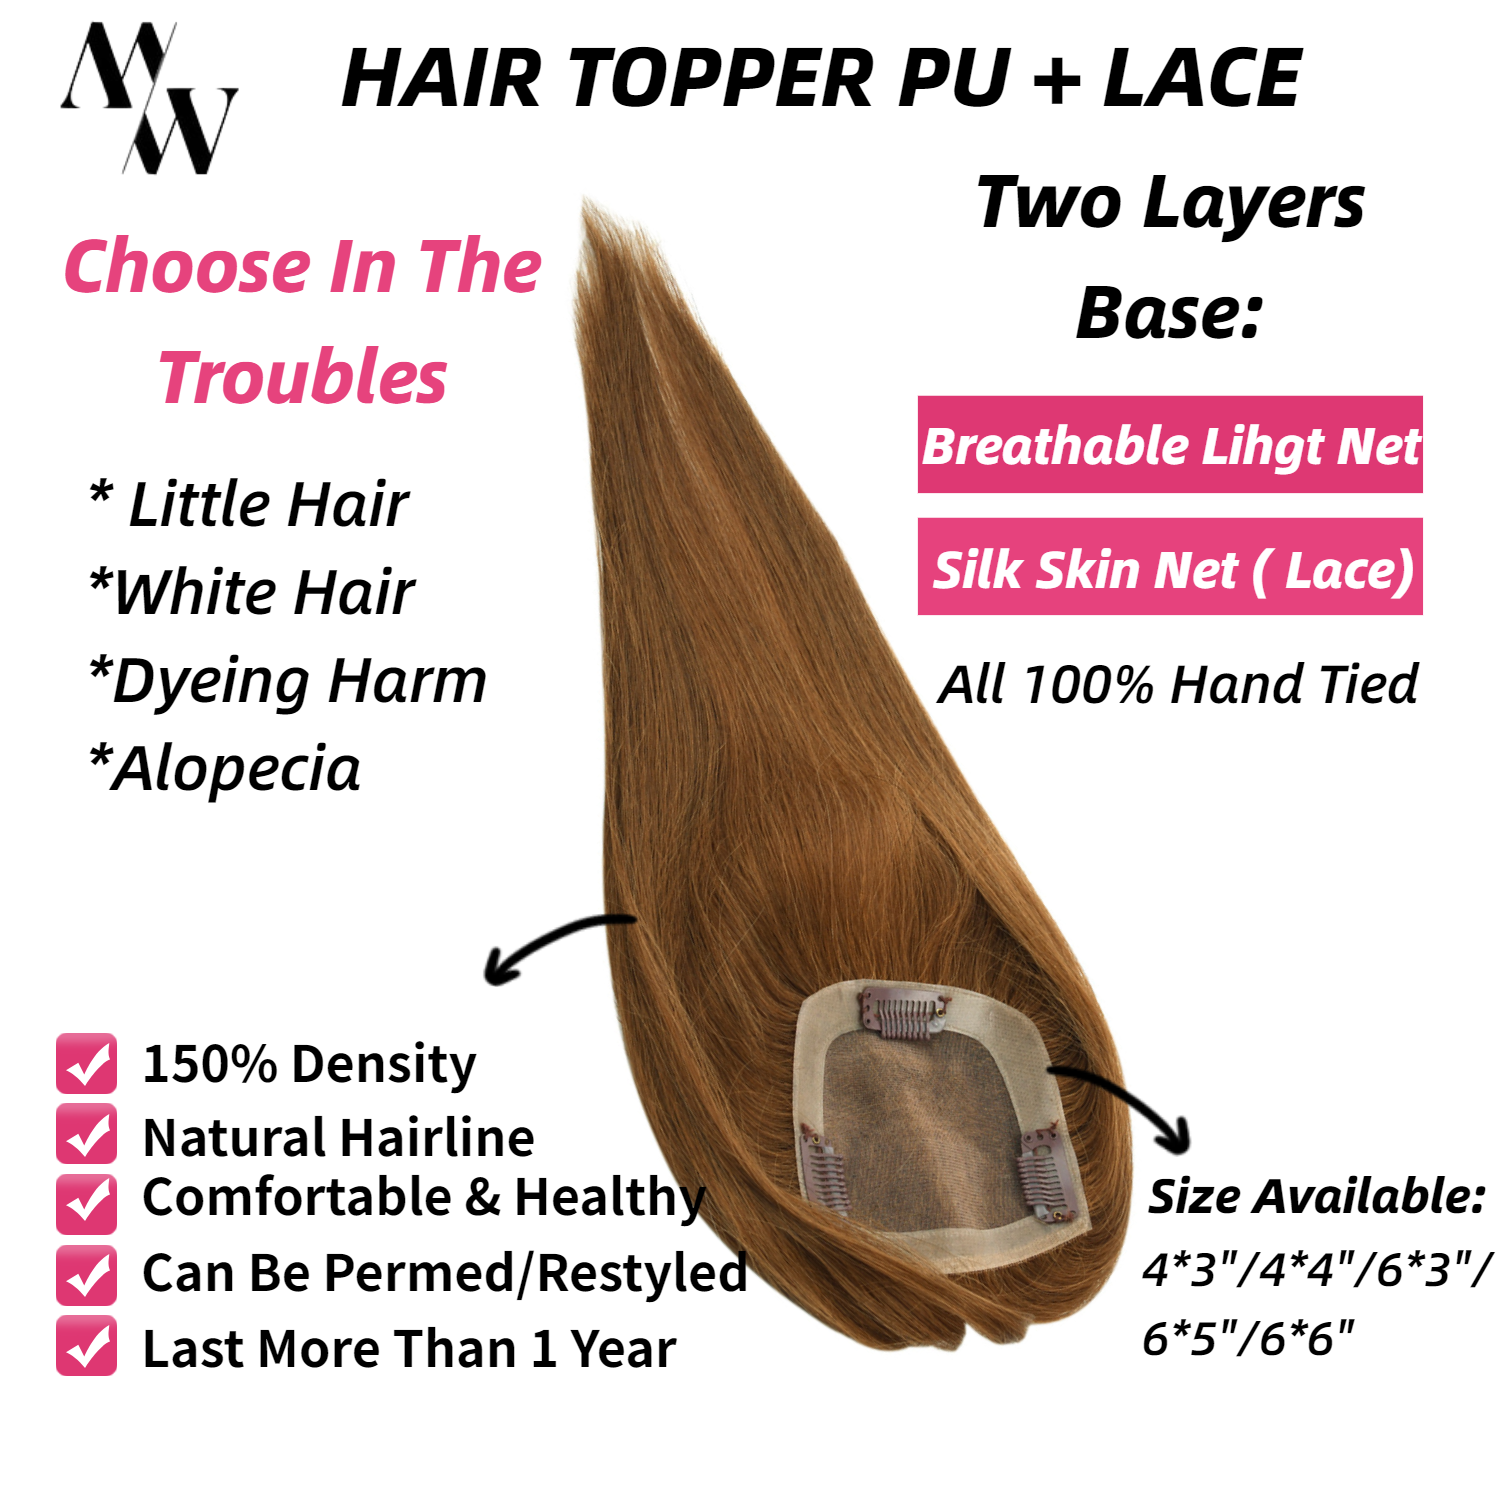 MW 100% Handtied Hair Topper Wig PU + Silk Base Lace Remy Human Hair For Women 3 Clips Hair Toupee 150% Density Natural Hairline